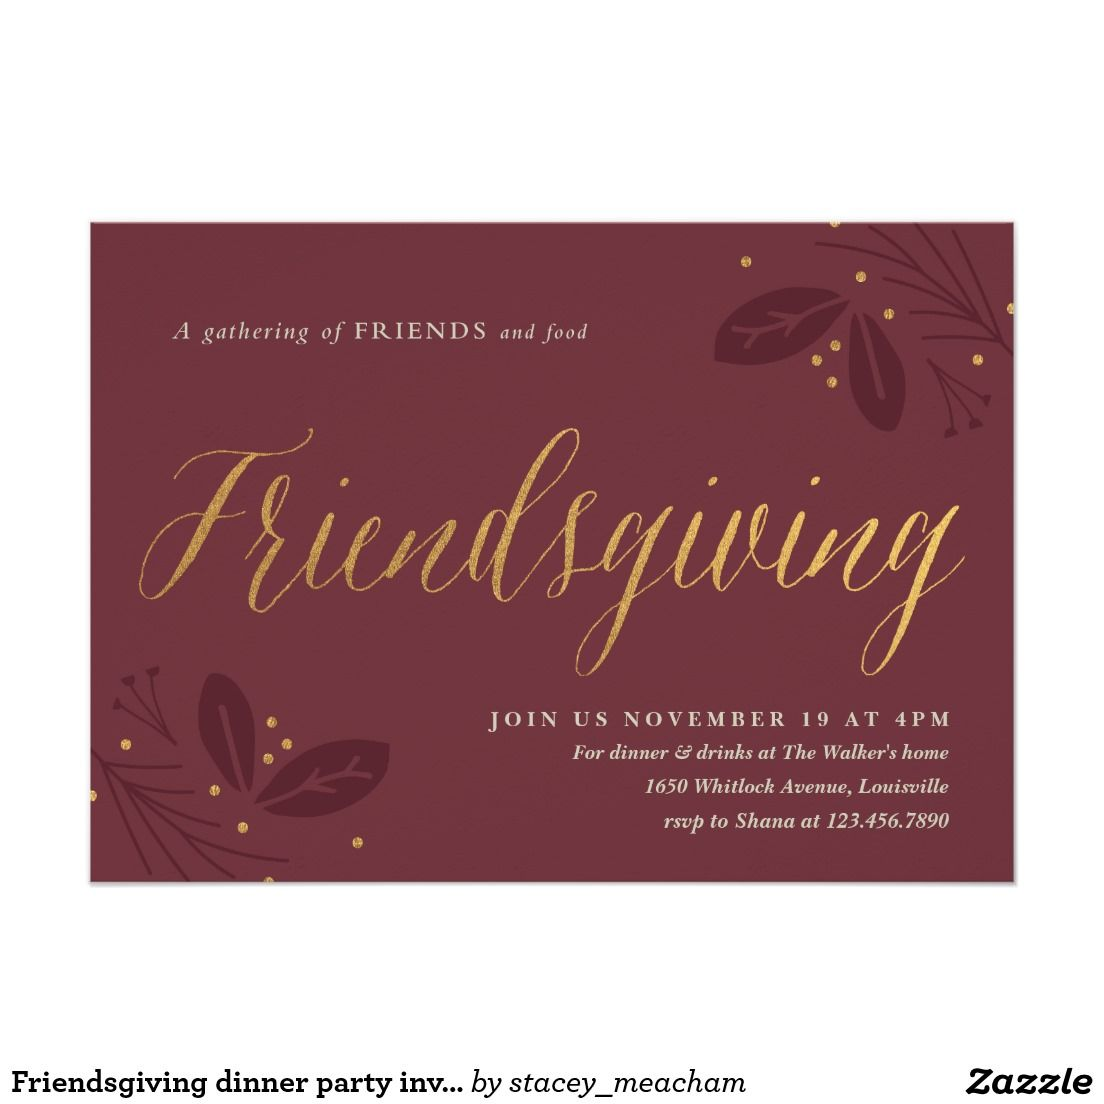 Friendsgiving dinner party invitation. Customize Yours Today ...